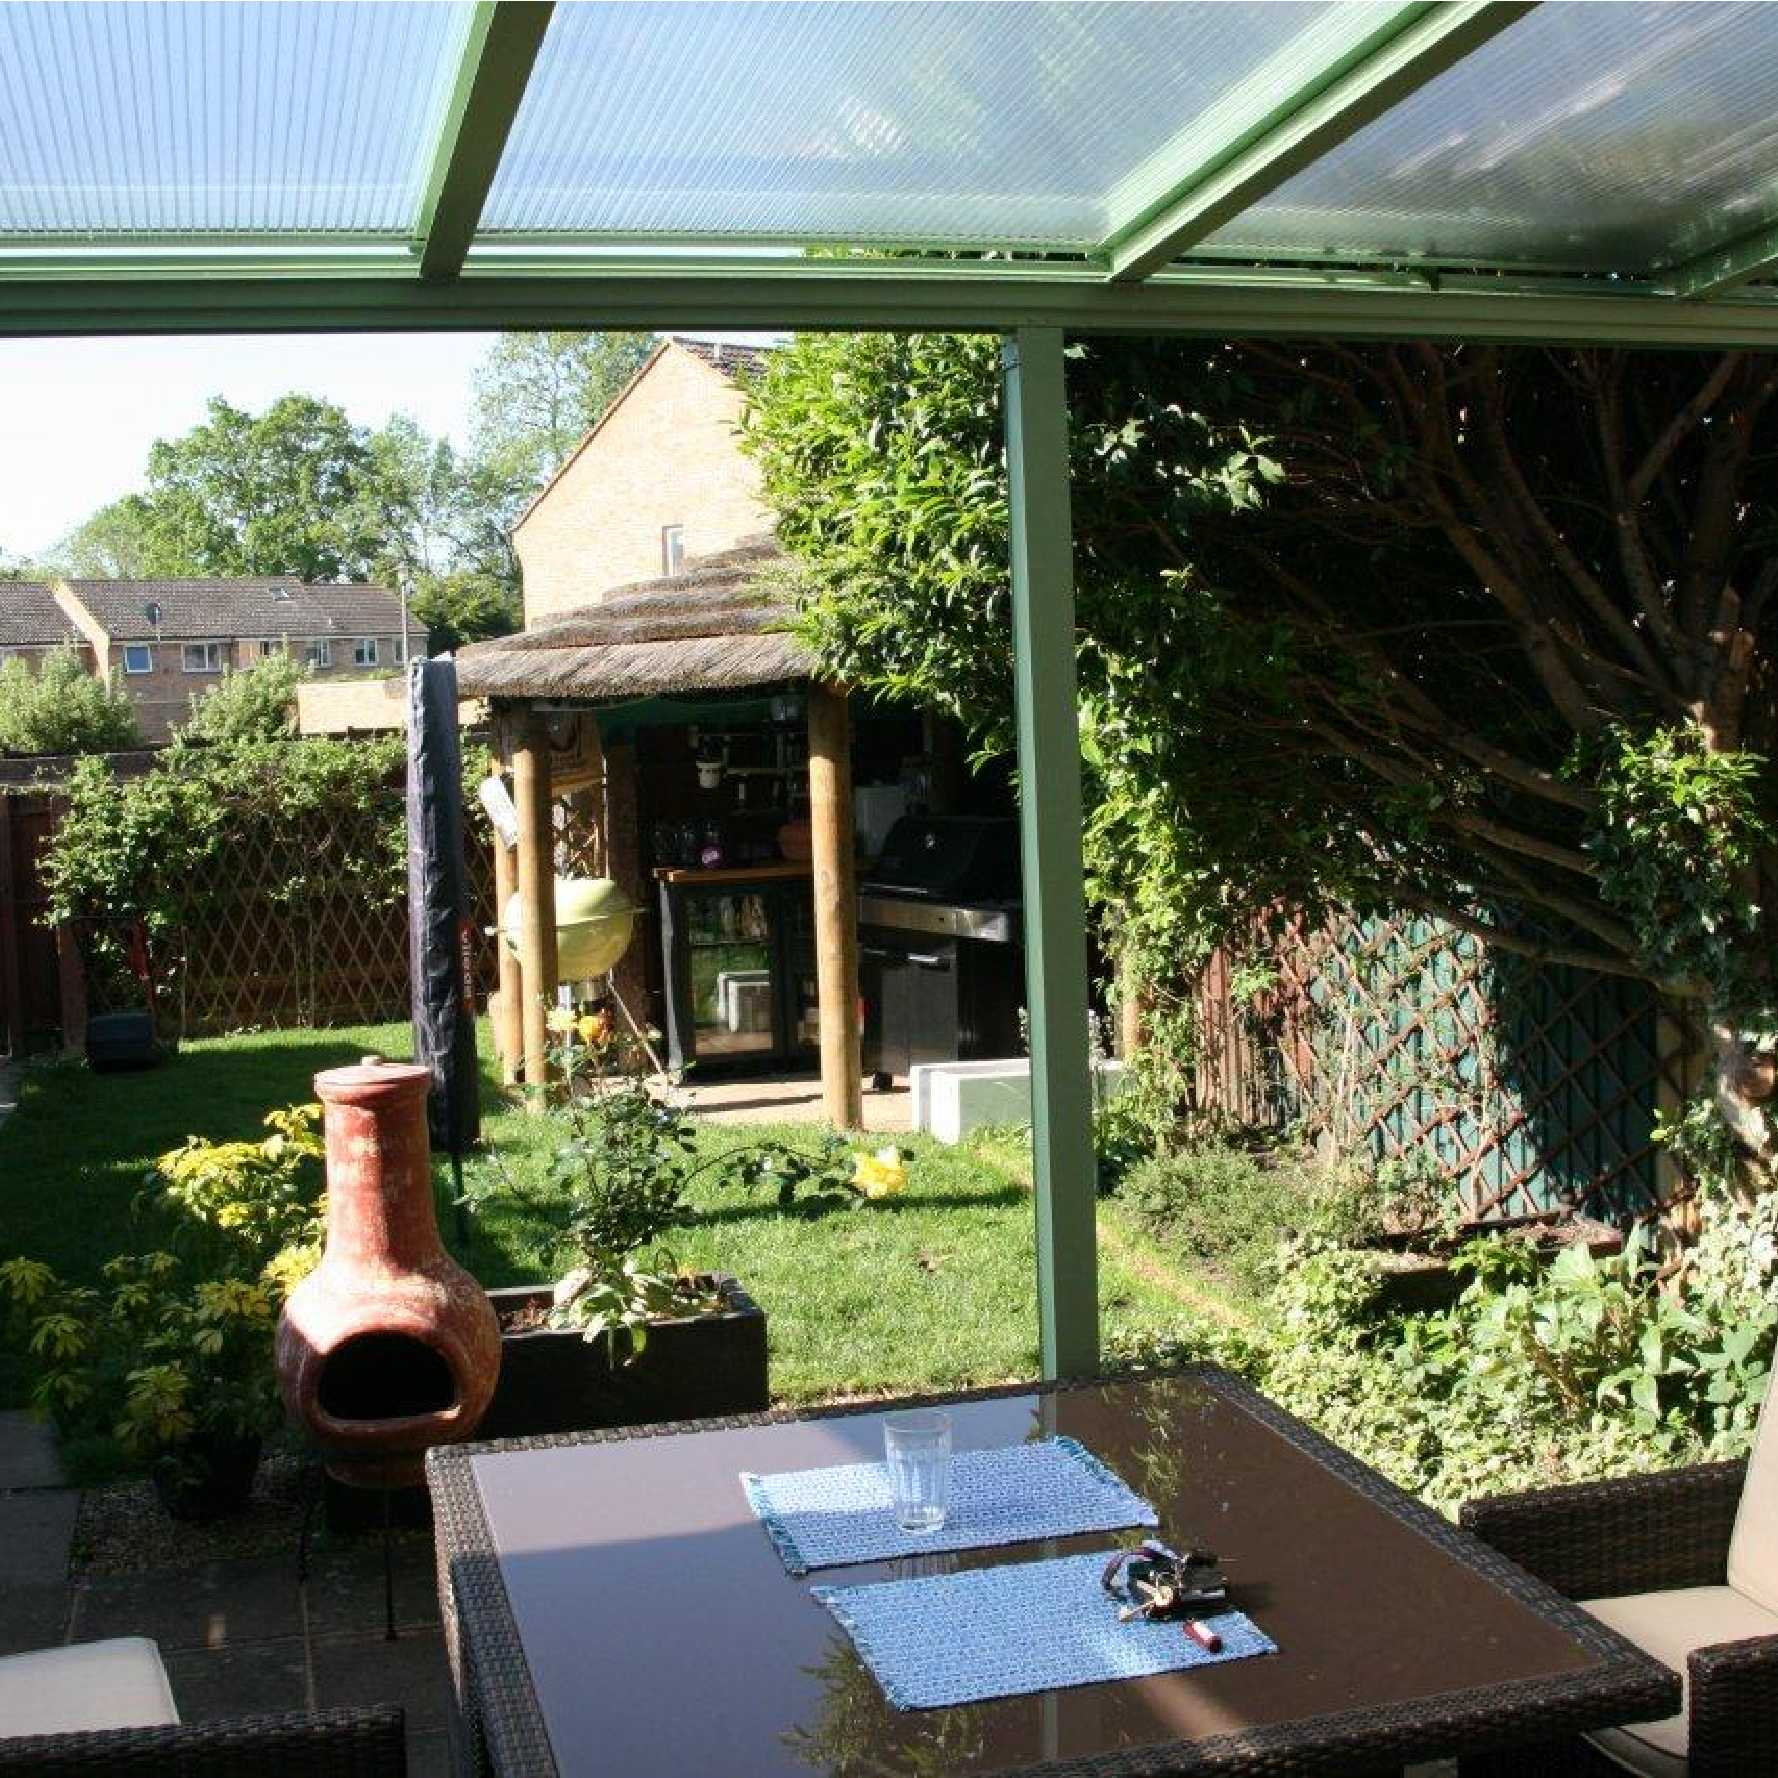 Affordable Omega Smart White Lean-To Canopy with 16mm Polycarbonate Glazing - 11.6m (W) x 1.5m (P), (5) Supporting Posts